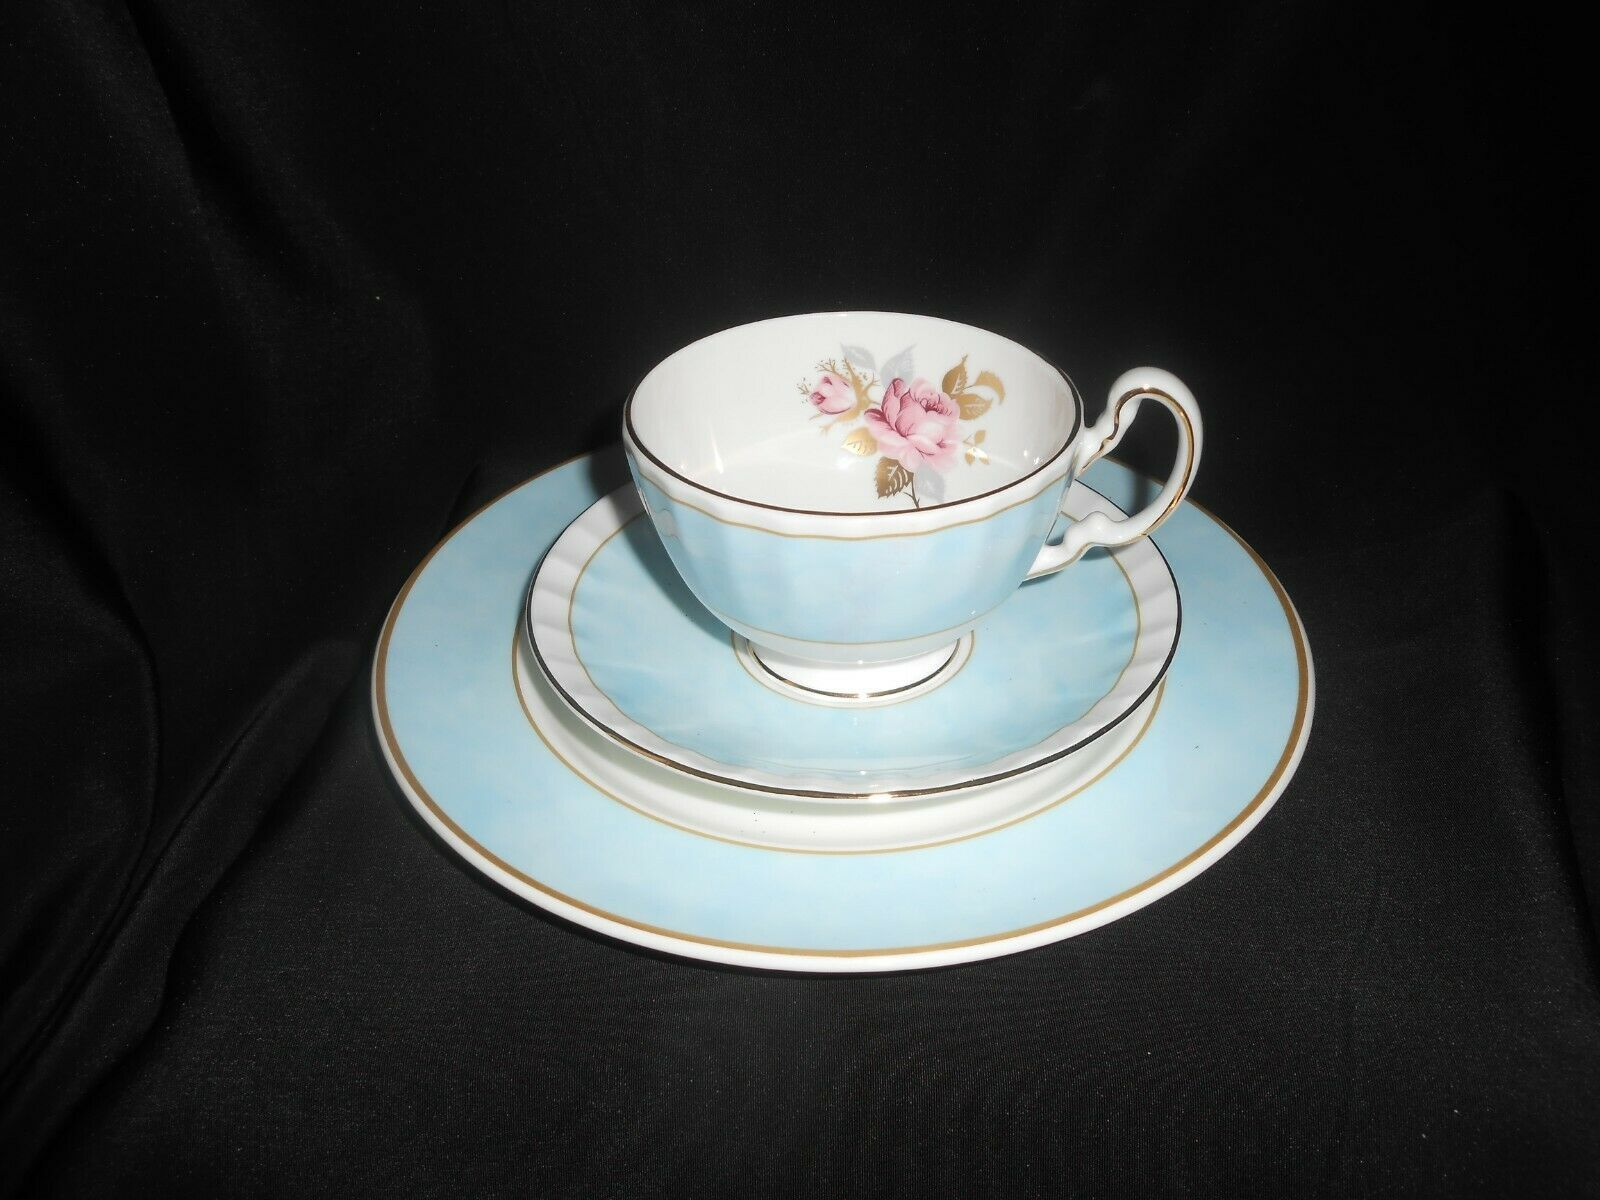 Aynsley Tea Trio Pale Blue Pink Cabbage Rose 3 Piece Set Vintage China